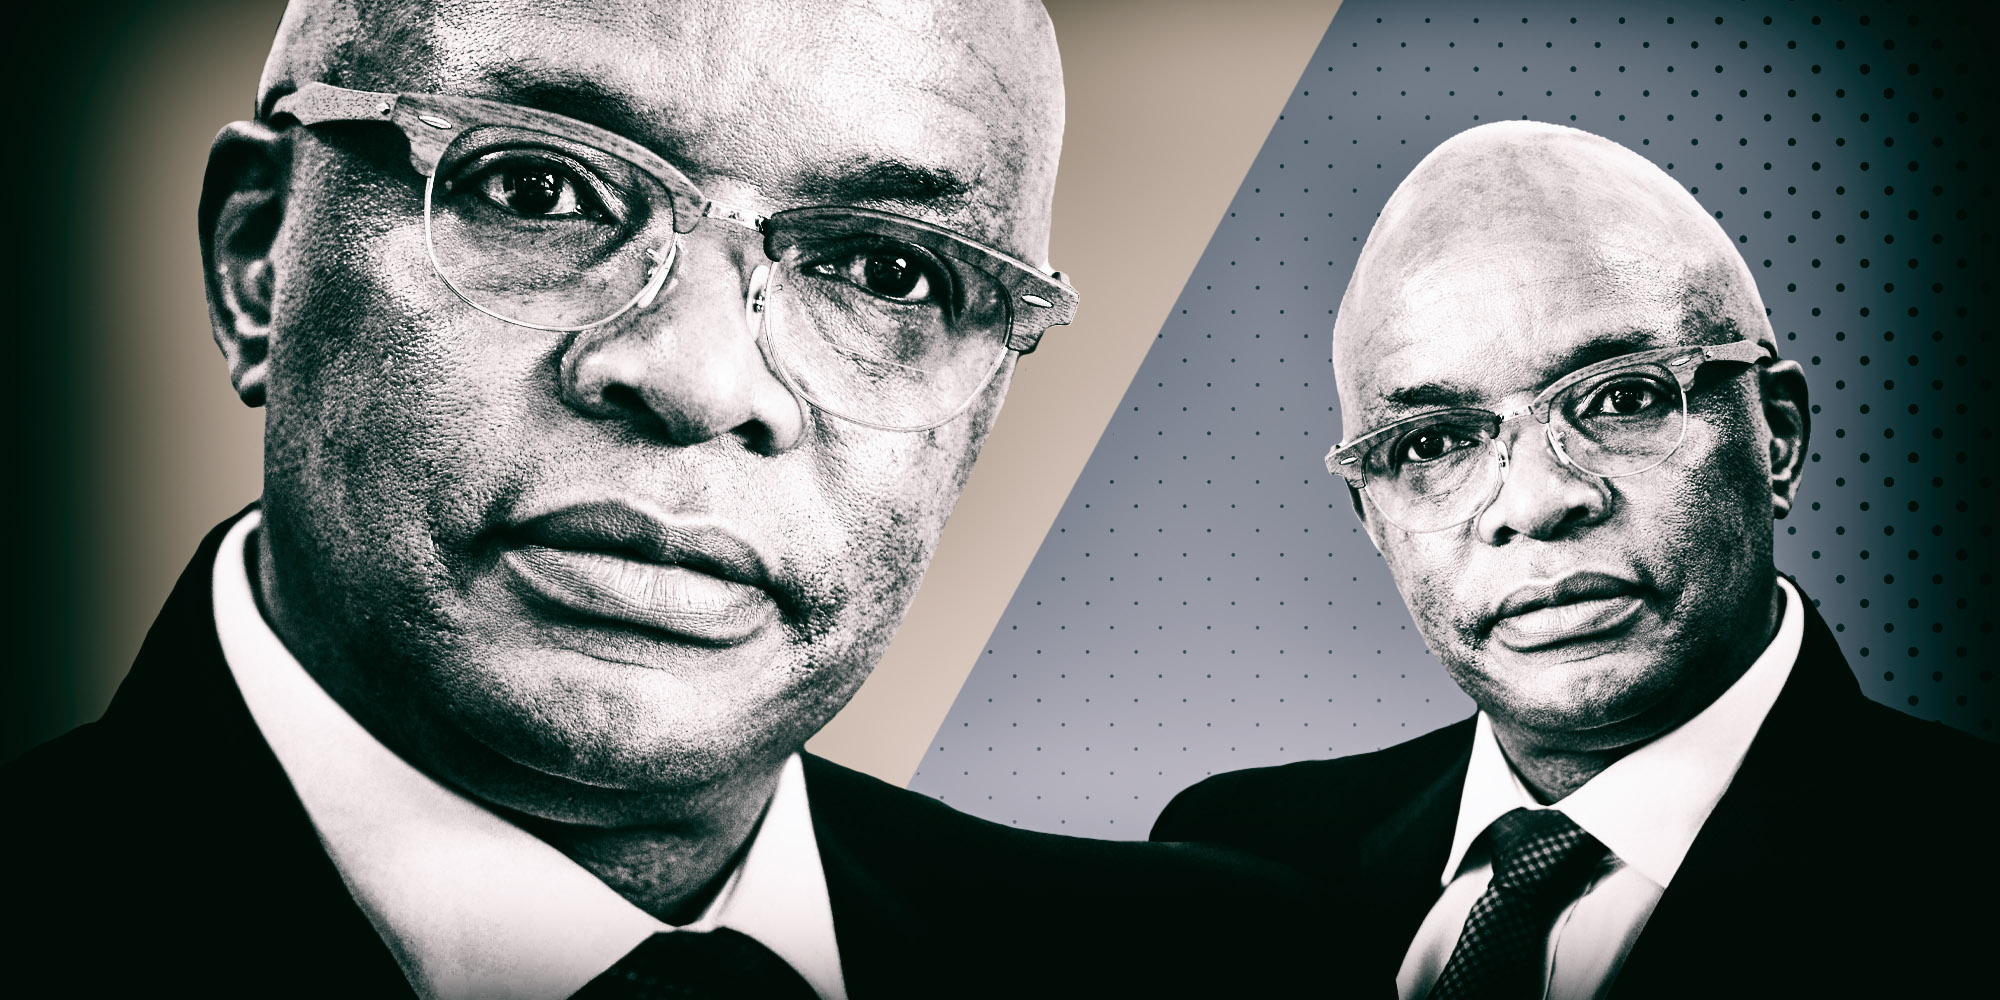 CORPORATE BOMBSHELL: Absa, AngloGold Ashanti and the Reserve Bank rocked by disputed sexual harassment claim levelled against Sipho Pityana